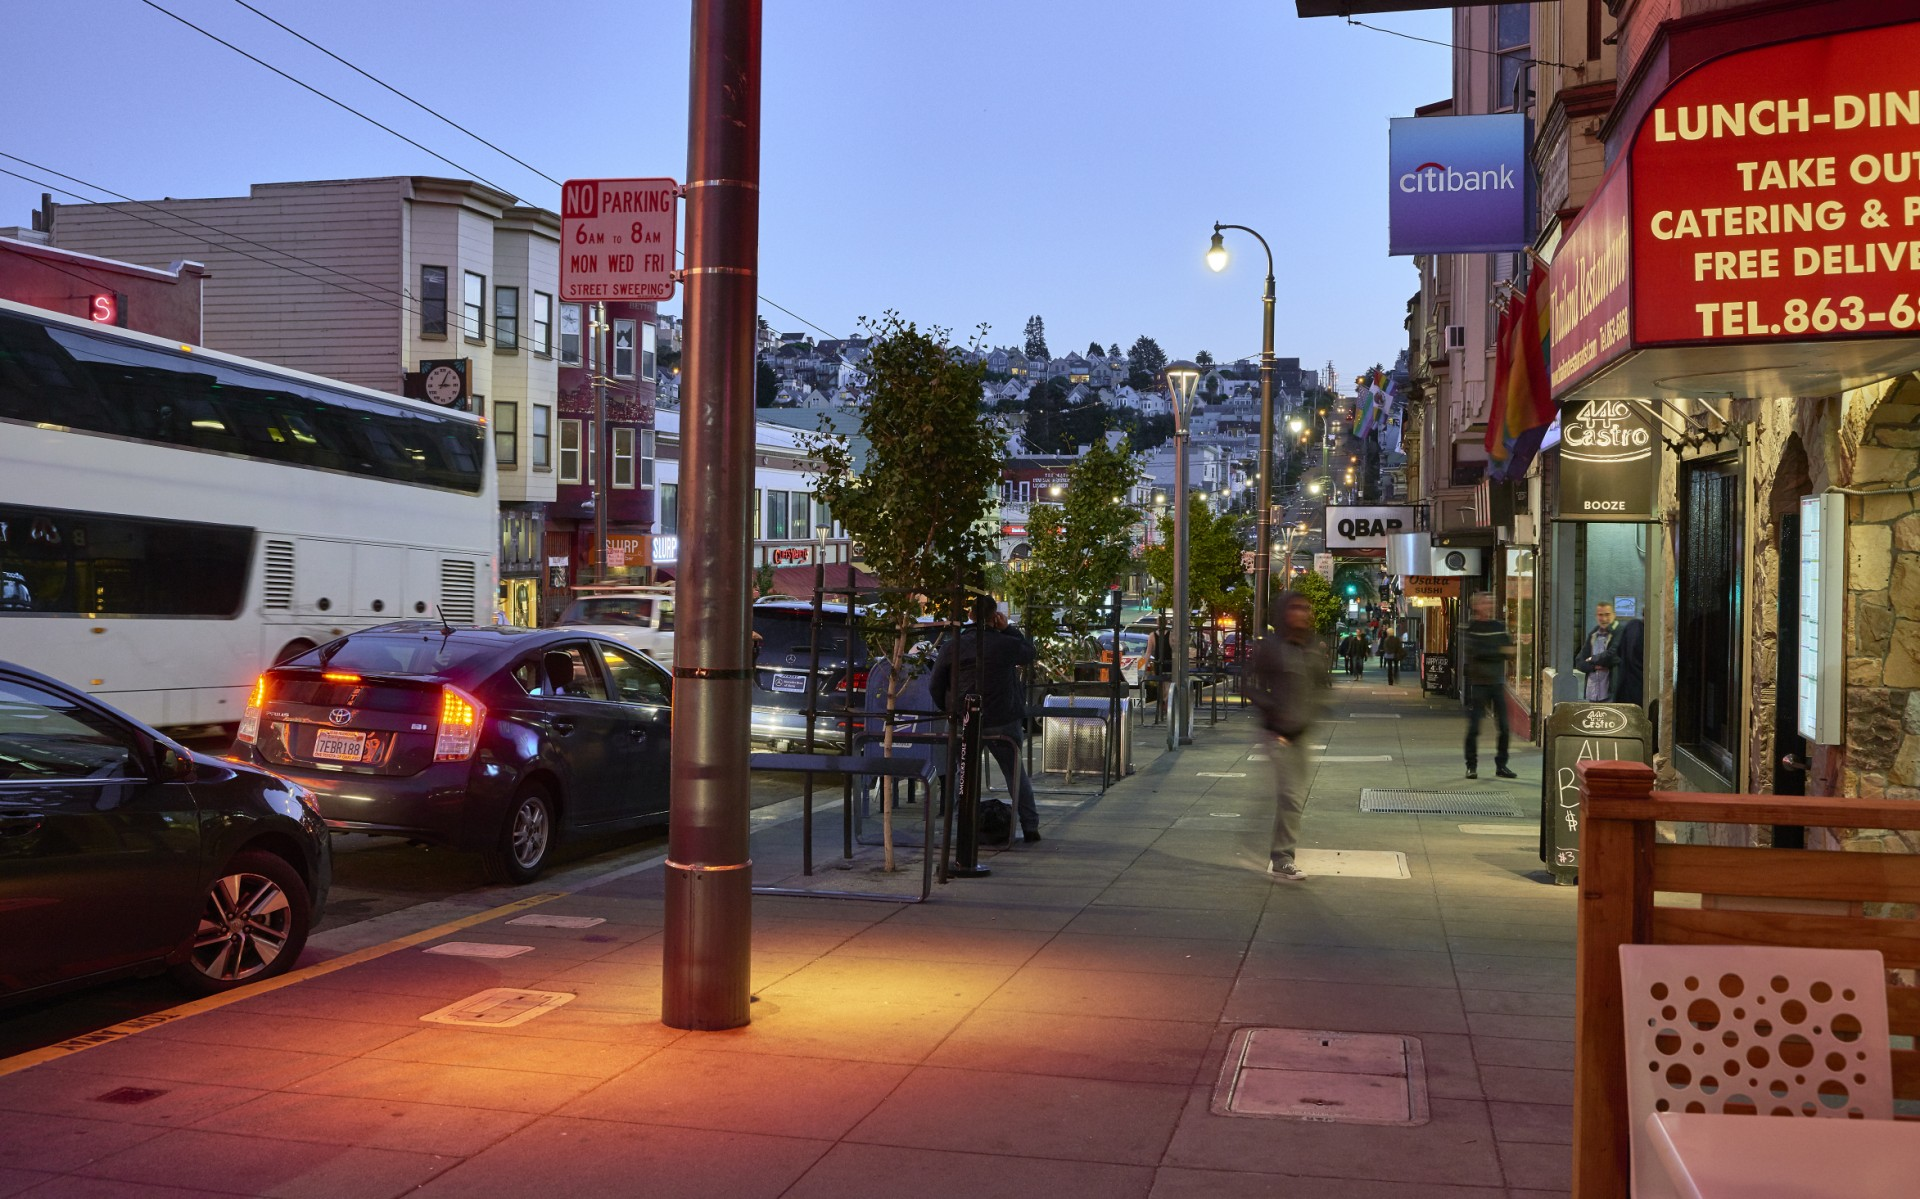 Each 26-foot-high luminaire spreads a 6-foot radius of color-changing light onto the sidewalks below.